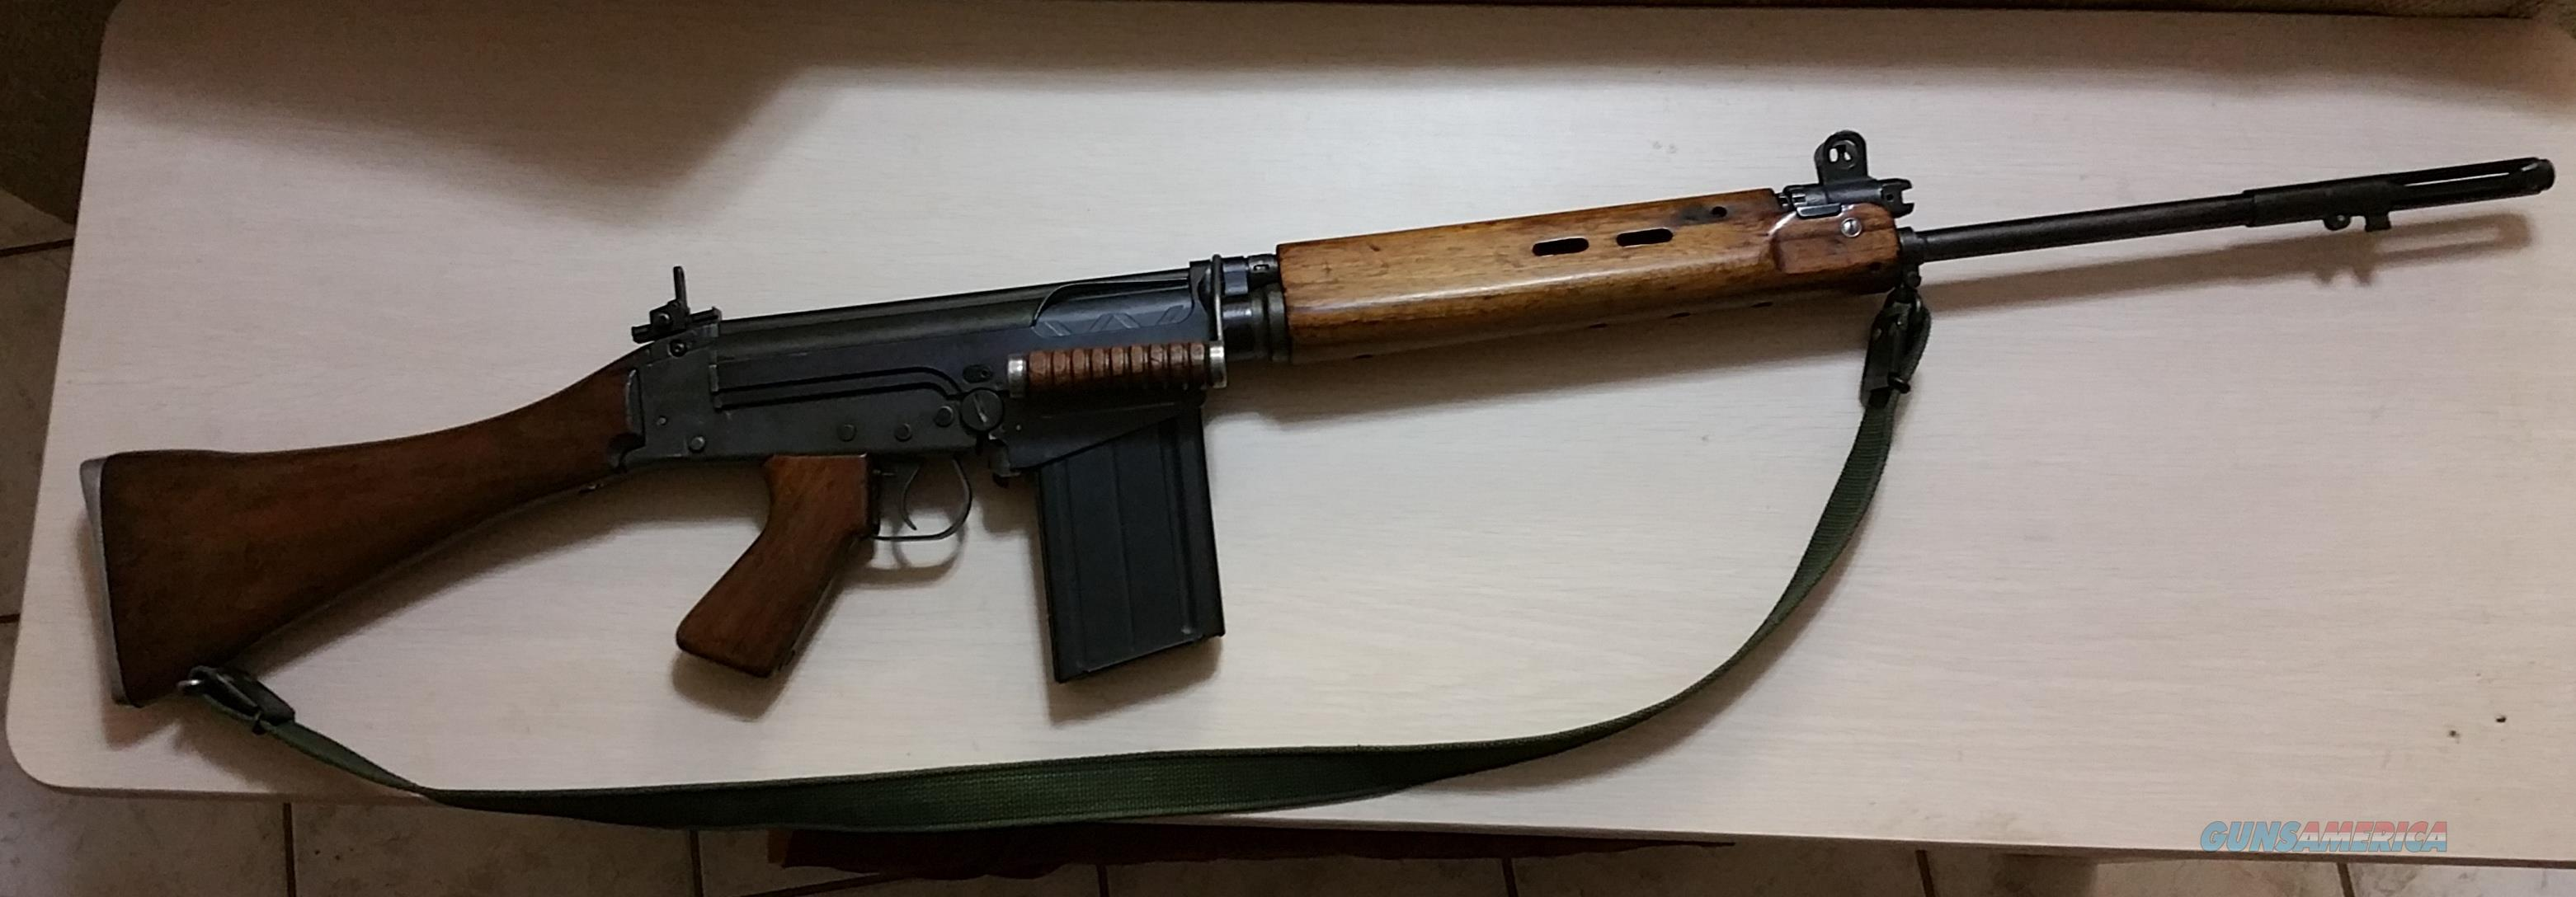 FAL Model L1A1 Rifle, 7 62x51, Inch pattern, Reduced price